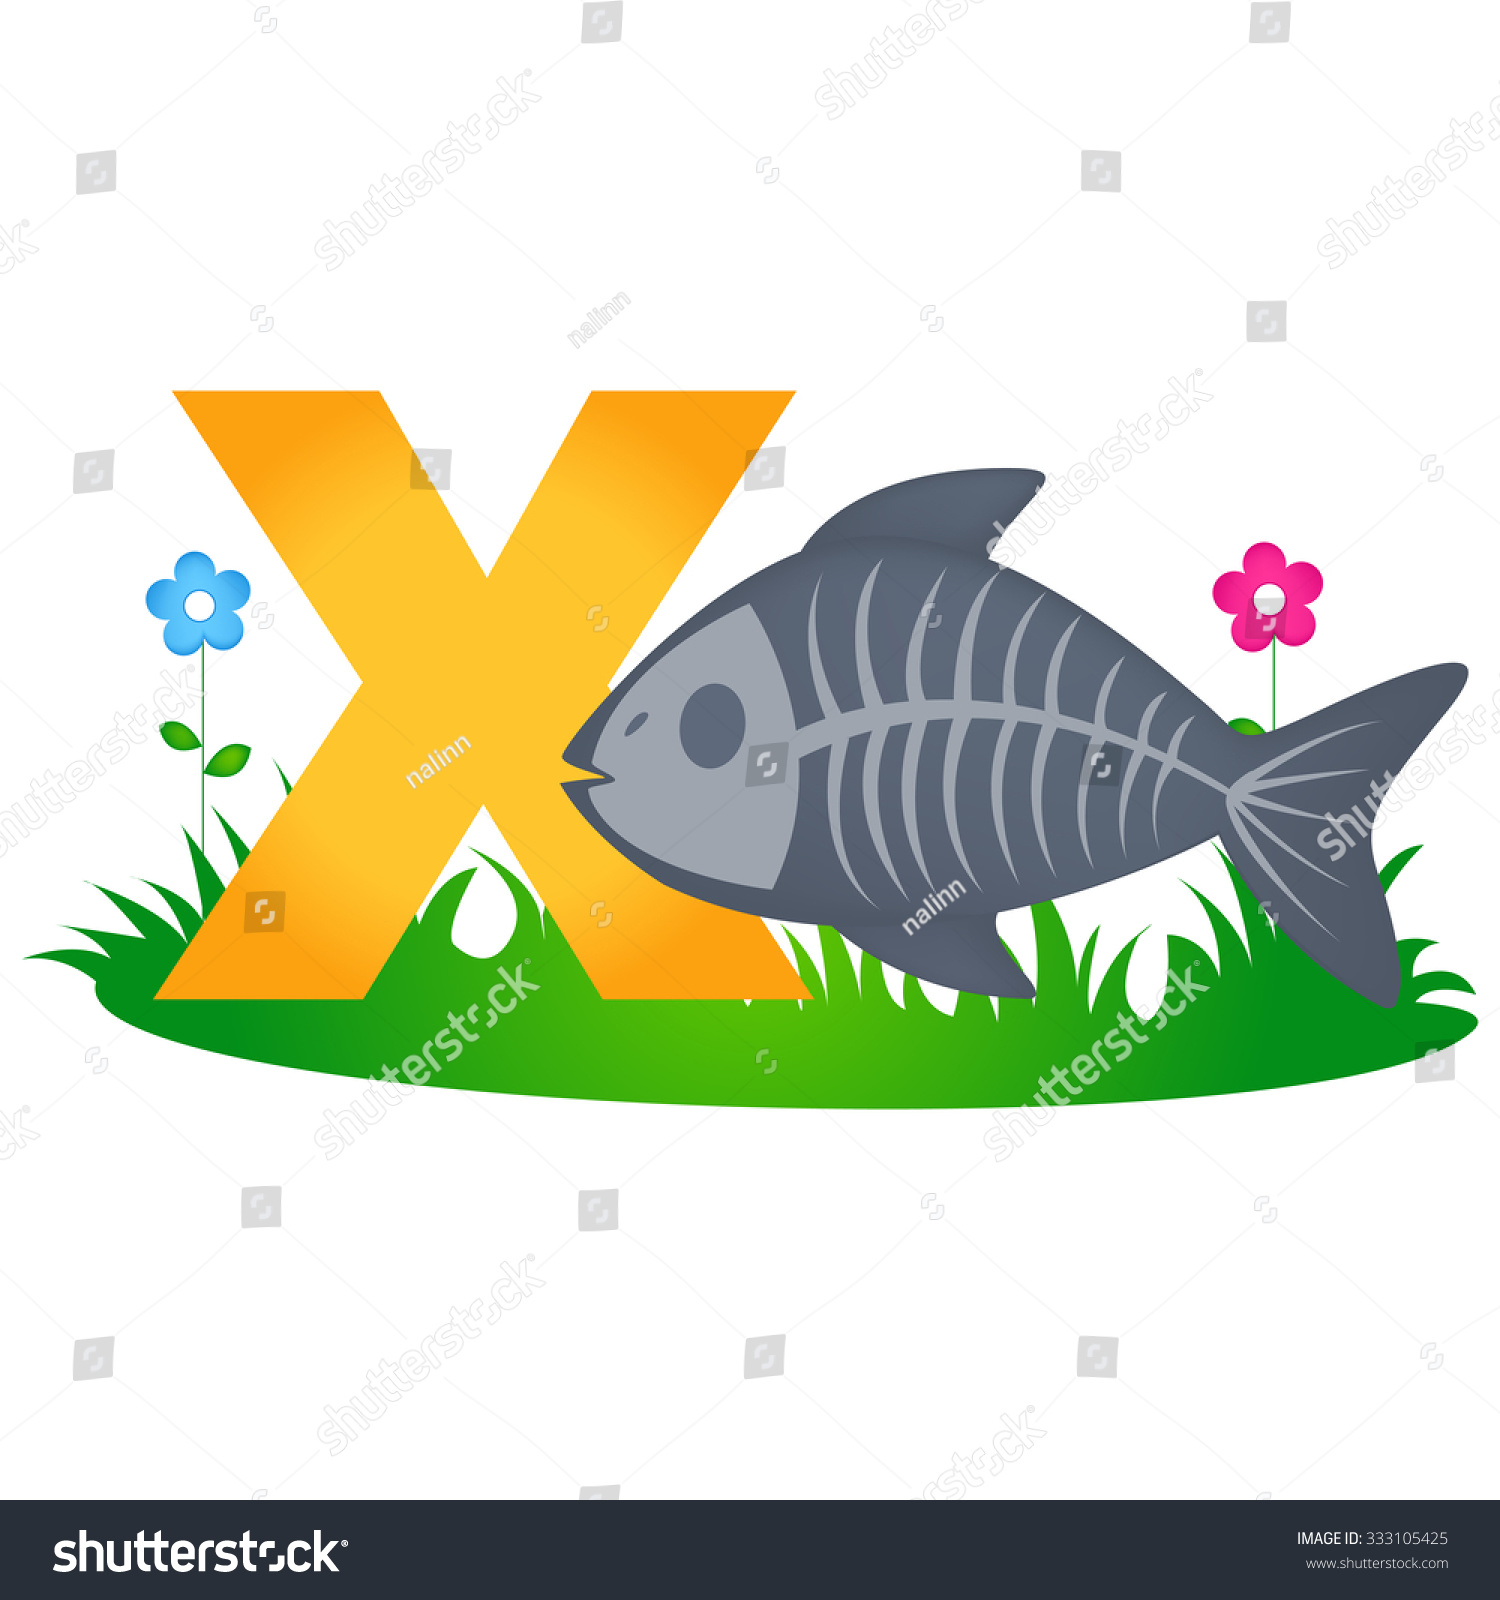 Colorful Animal Alphabet Letter X With A Cute X Ray Fish